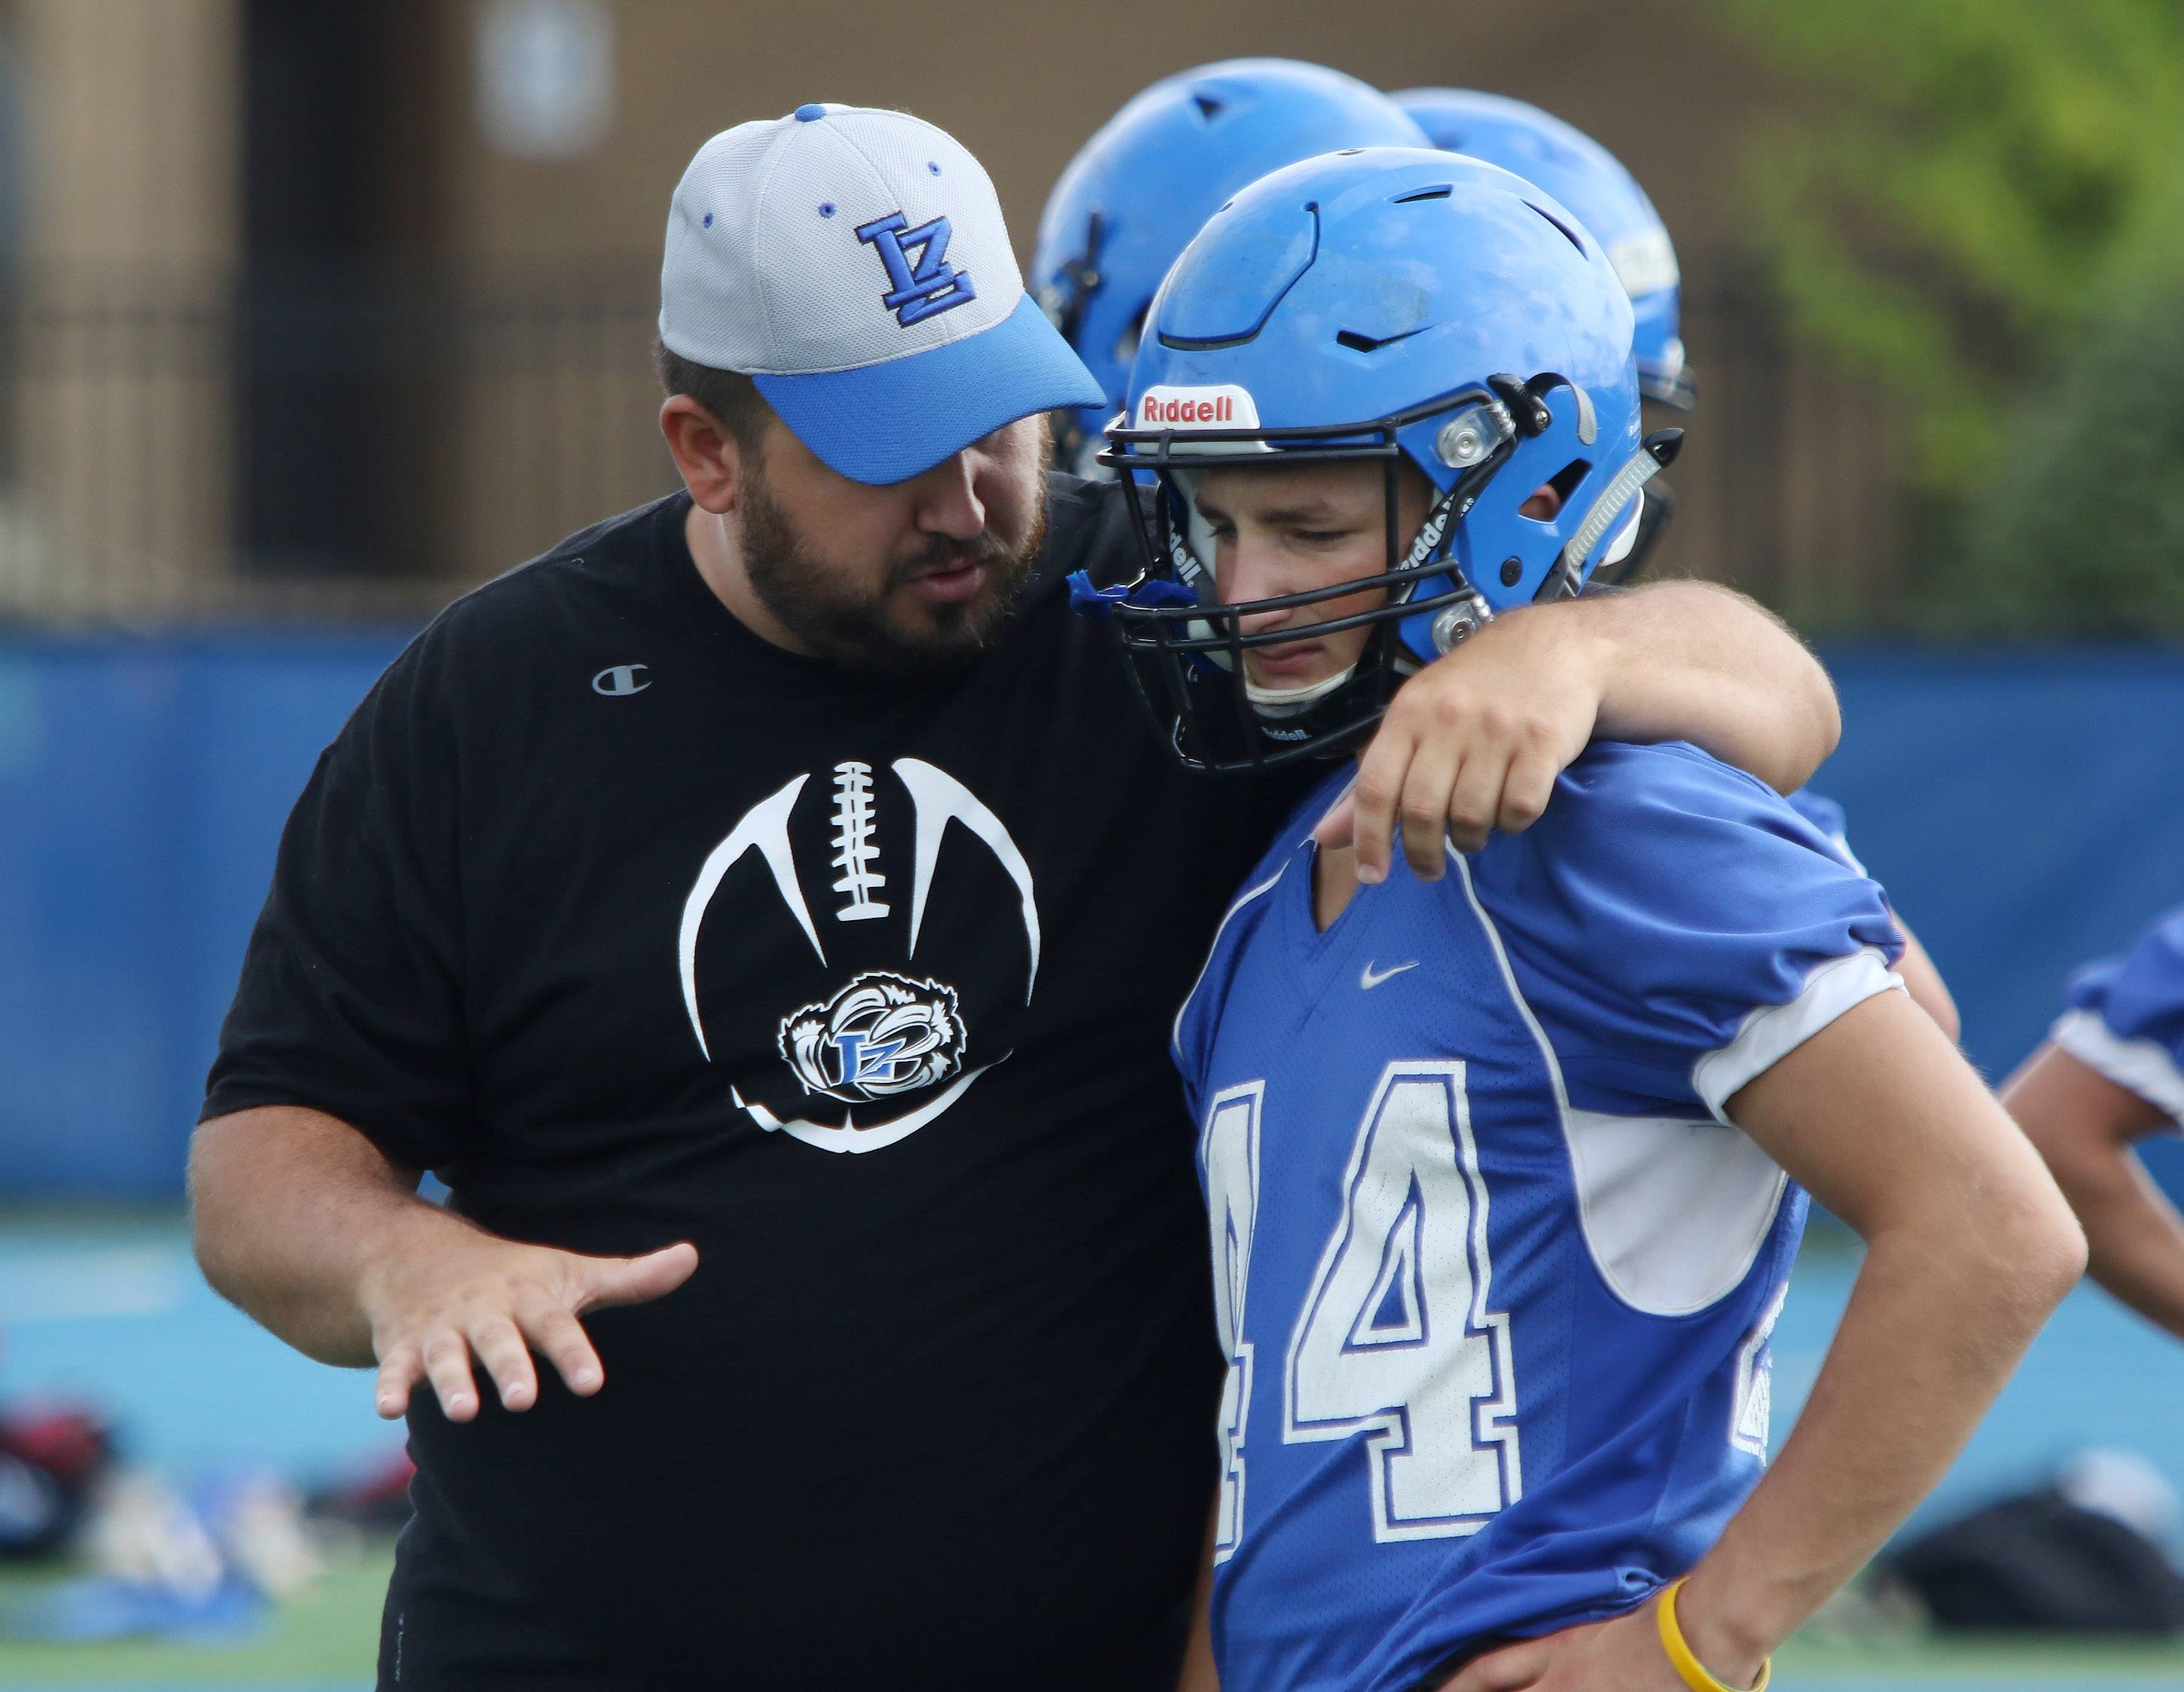 Defensive coordinator Nicholas Summers talks to cornerback Austin LePage during the first day of football practice at Lake Zurich High School on Monday.